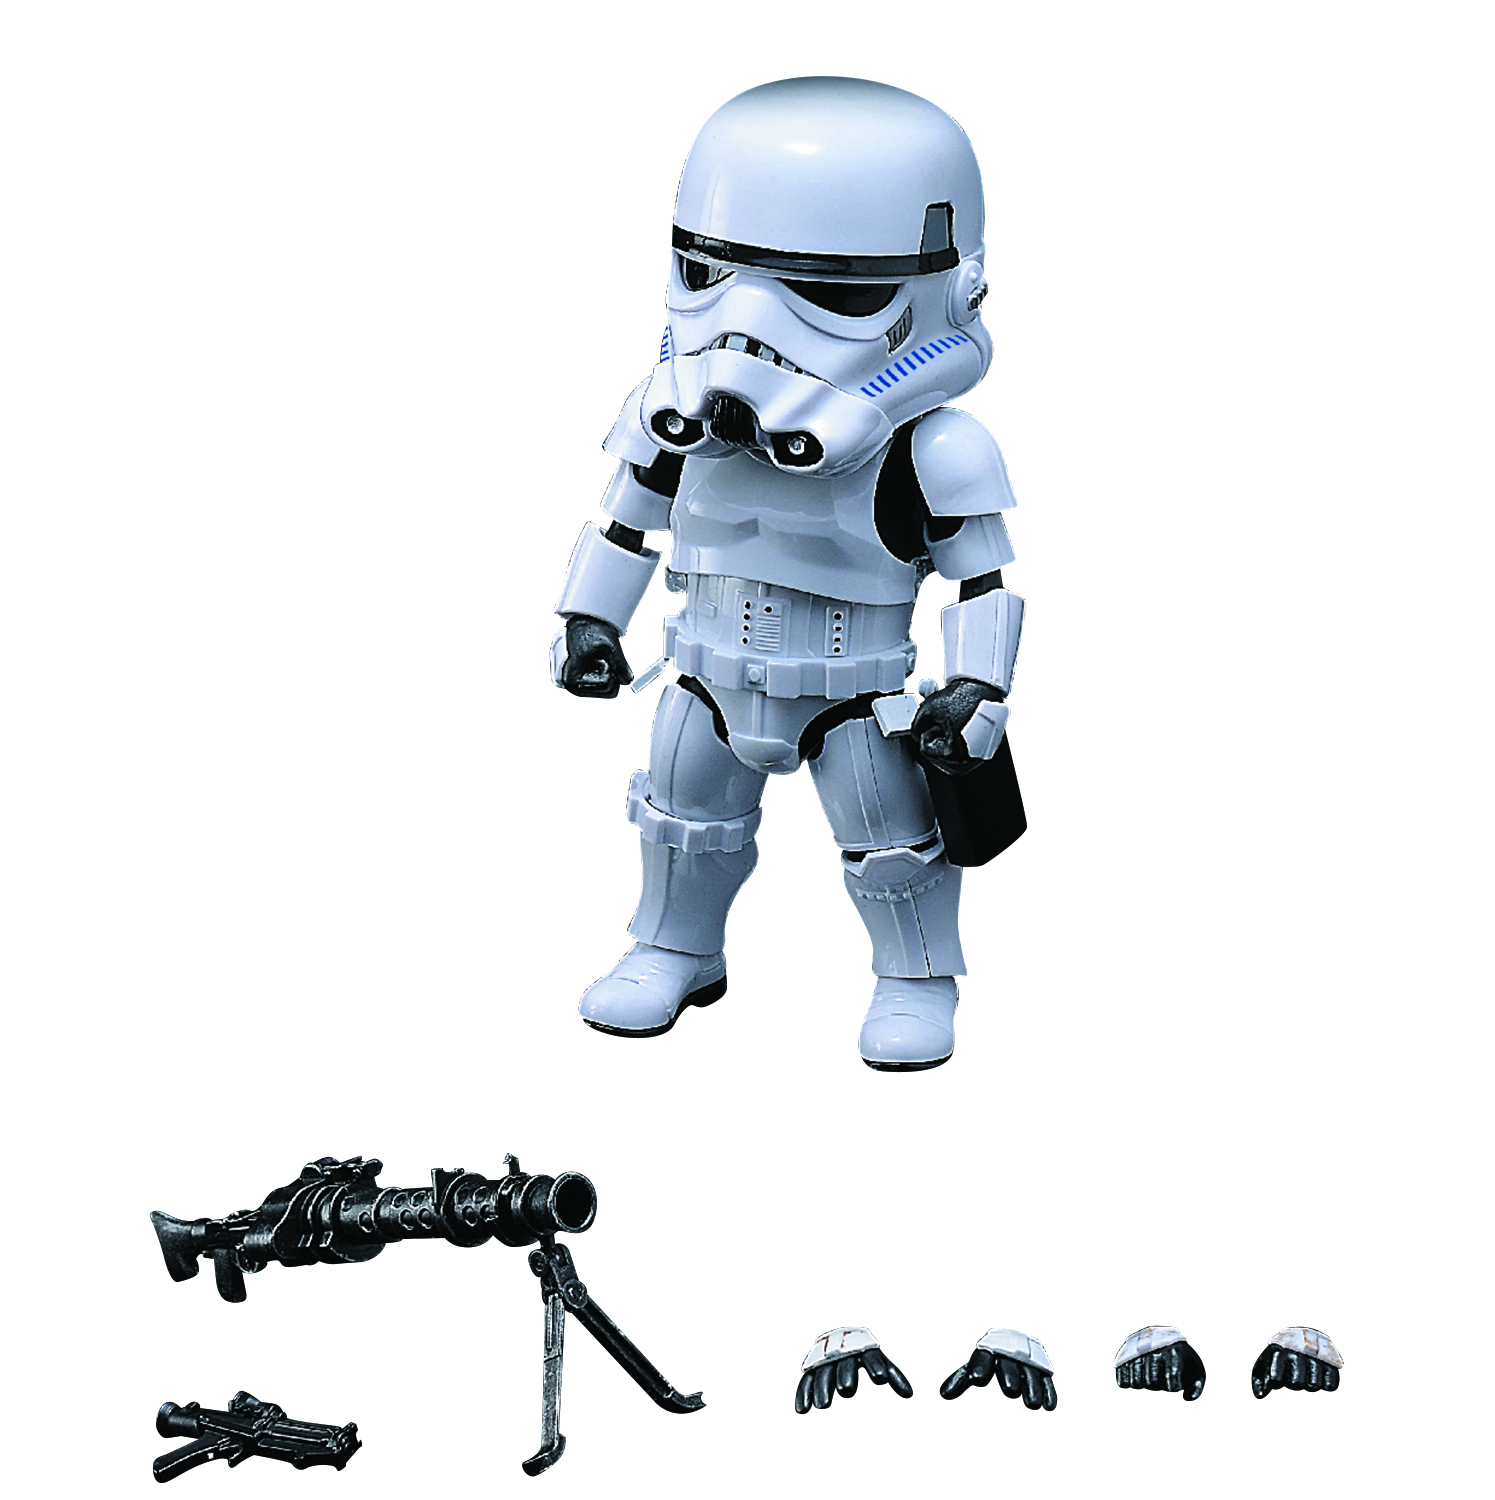 STAR WARS EPISODE V EGG ATTACK STORMTROOPER